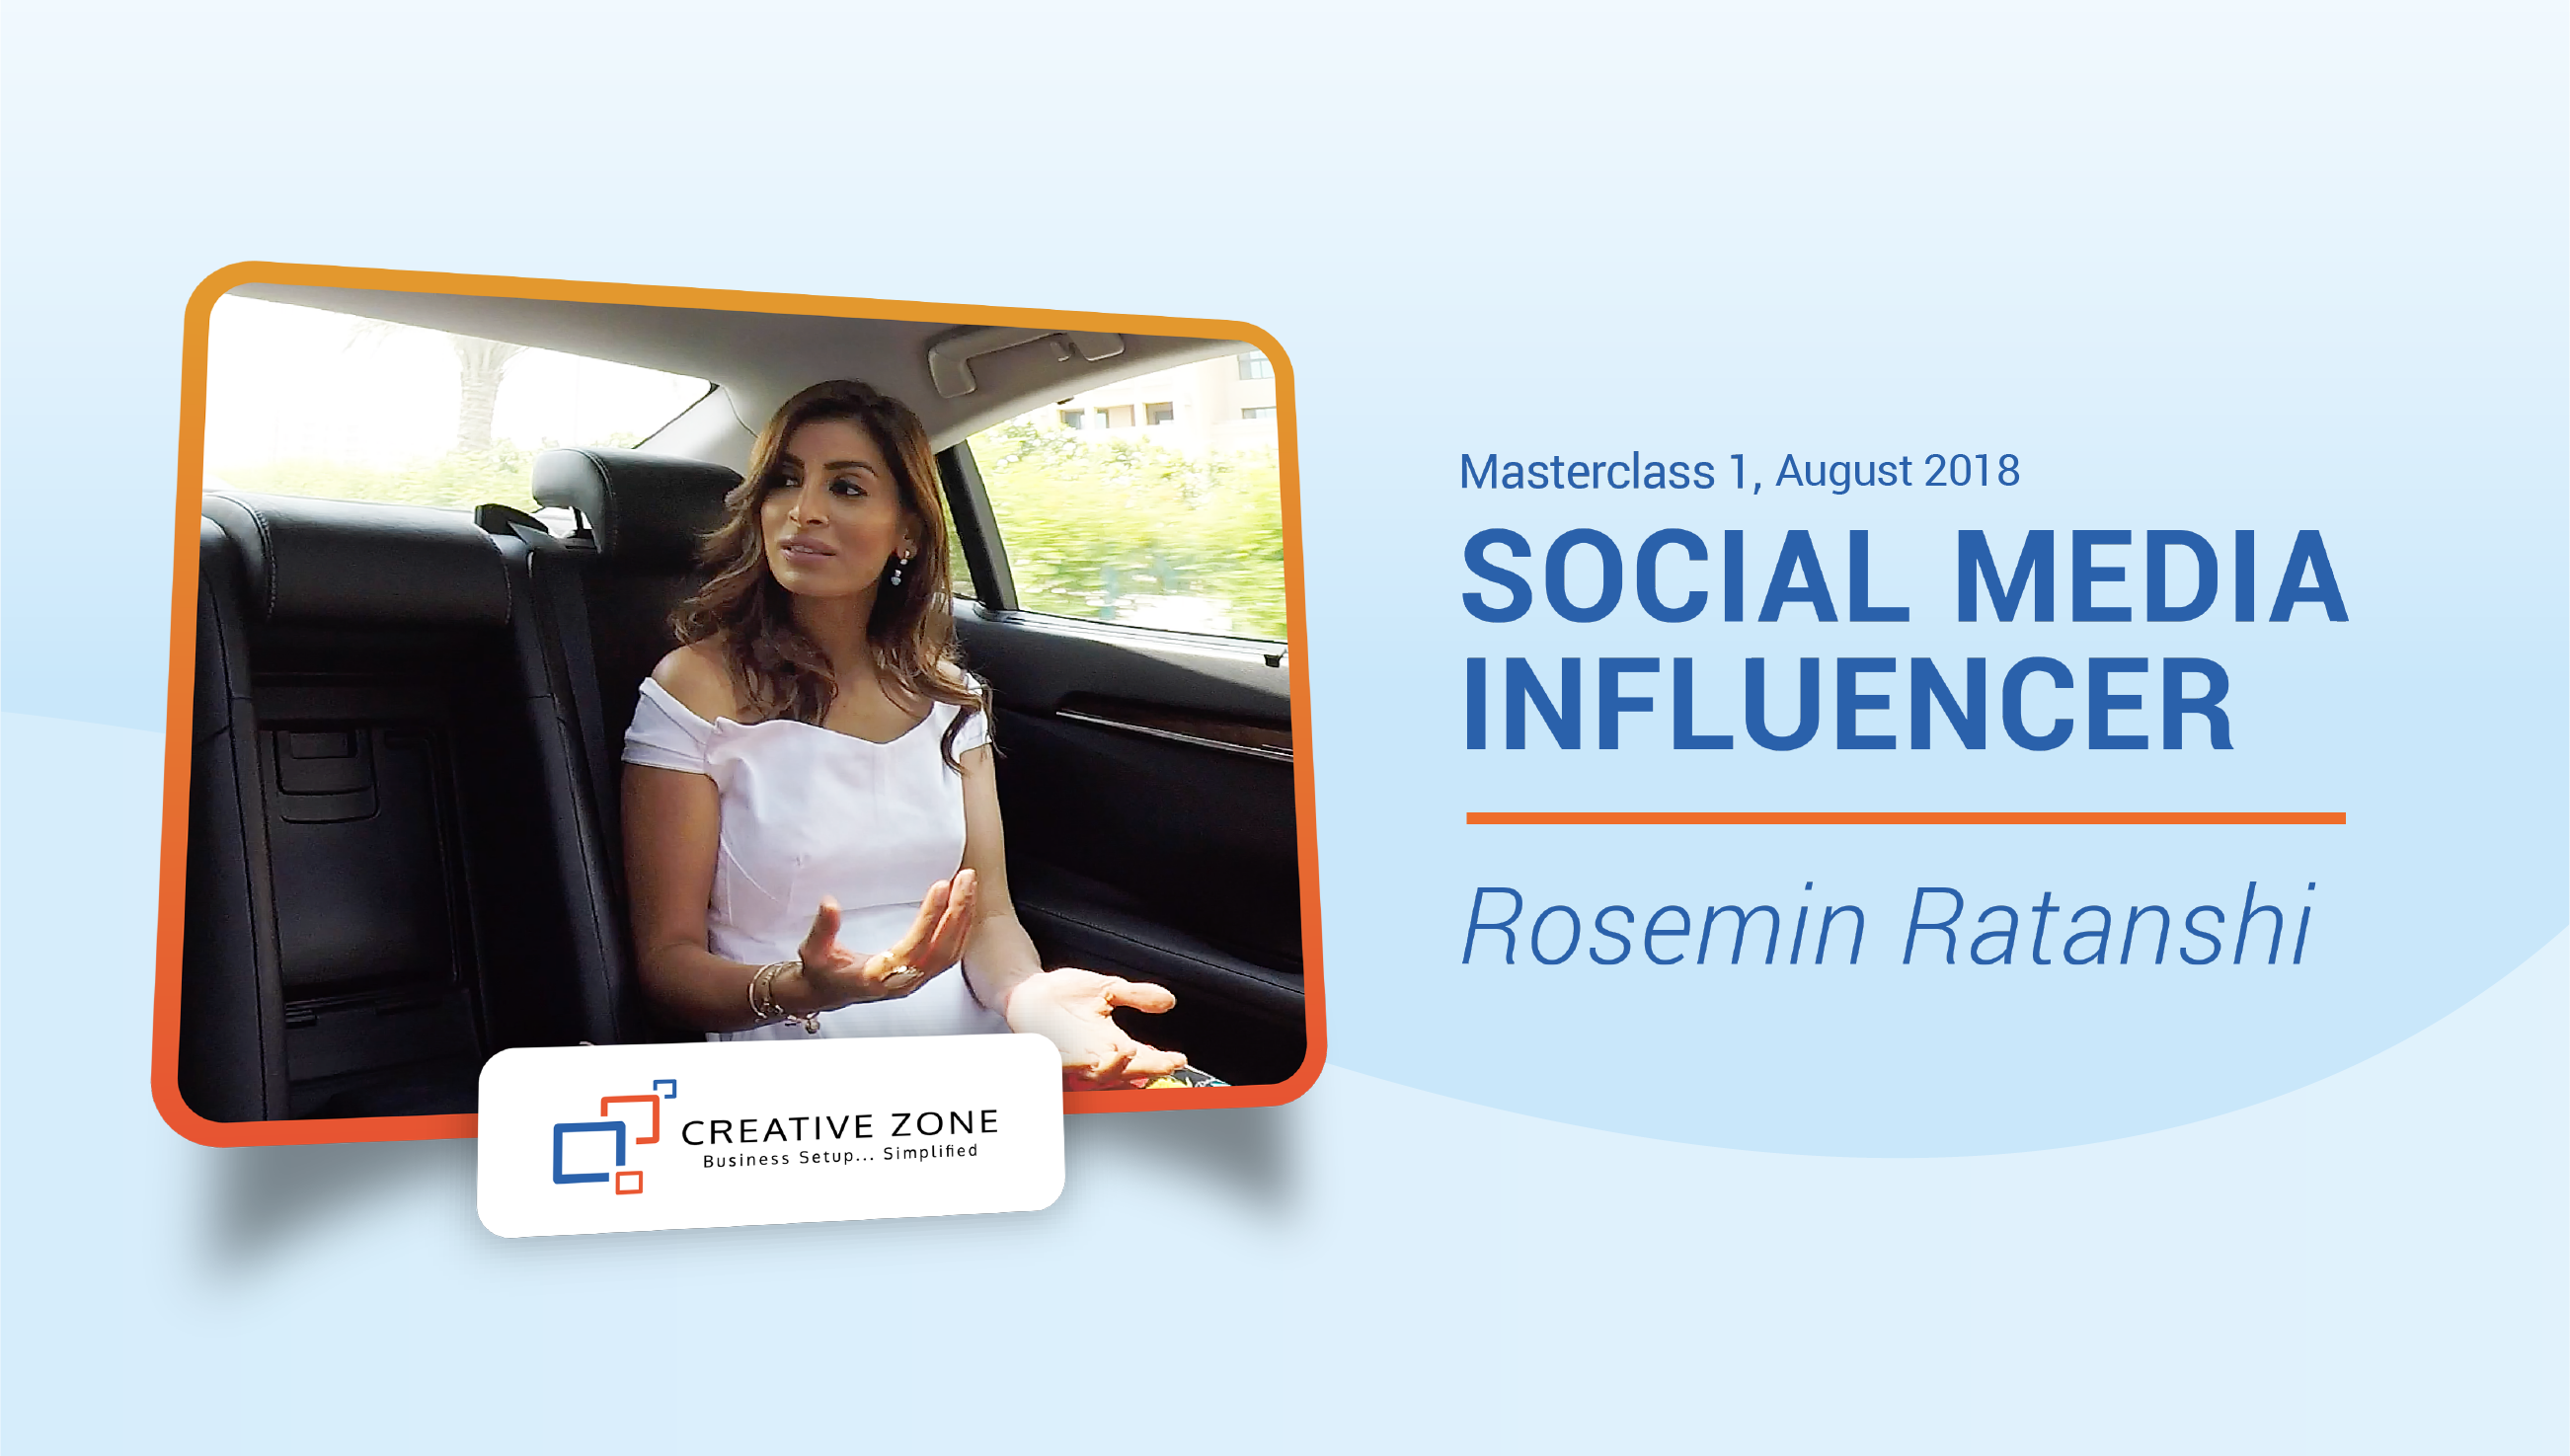 Introducing our very first CZ Entrepreneur Masterclass with Rosemin Ratanshi